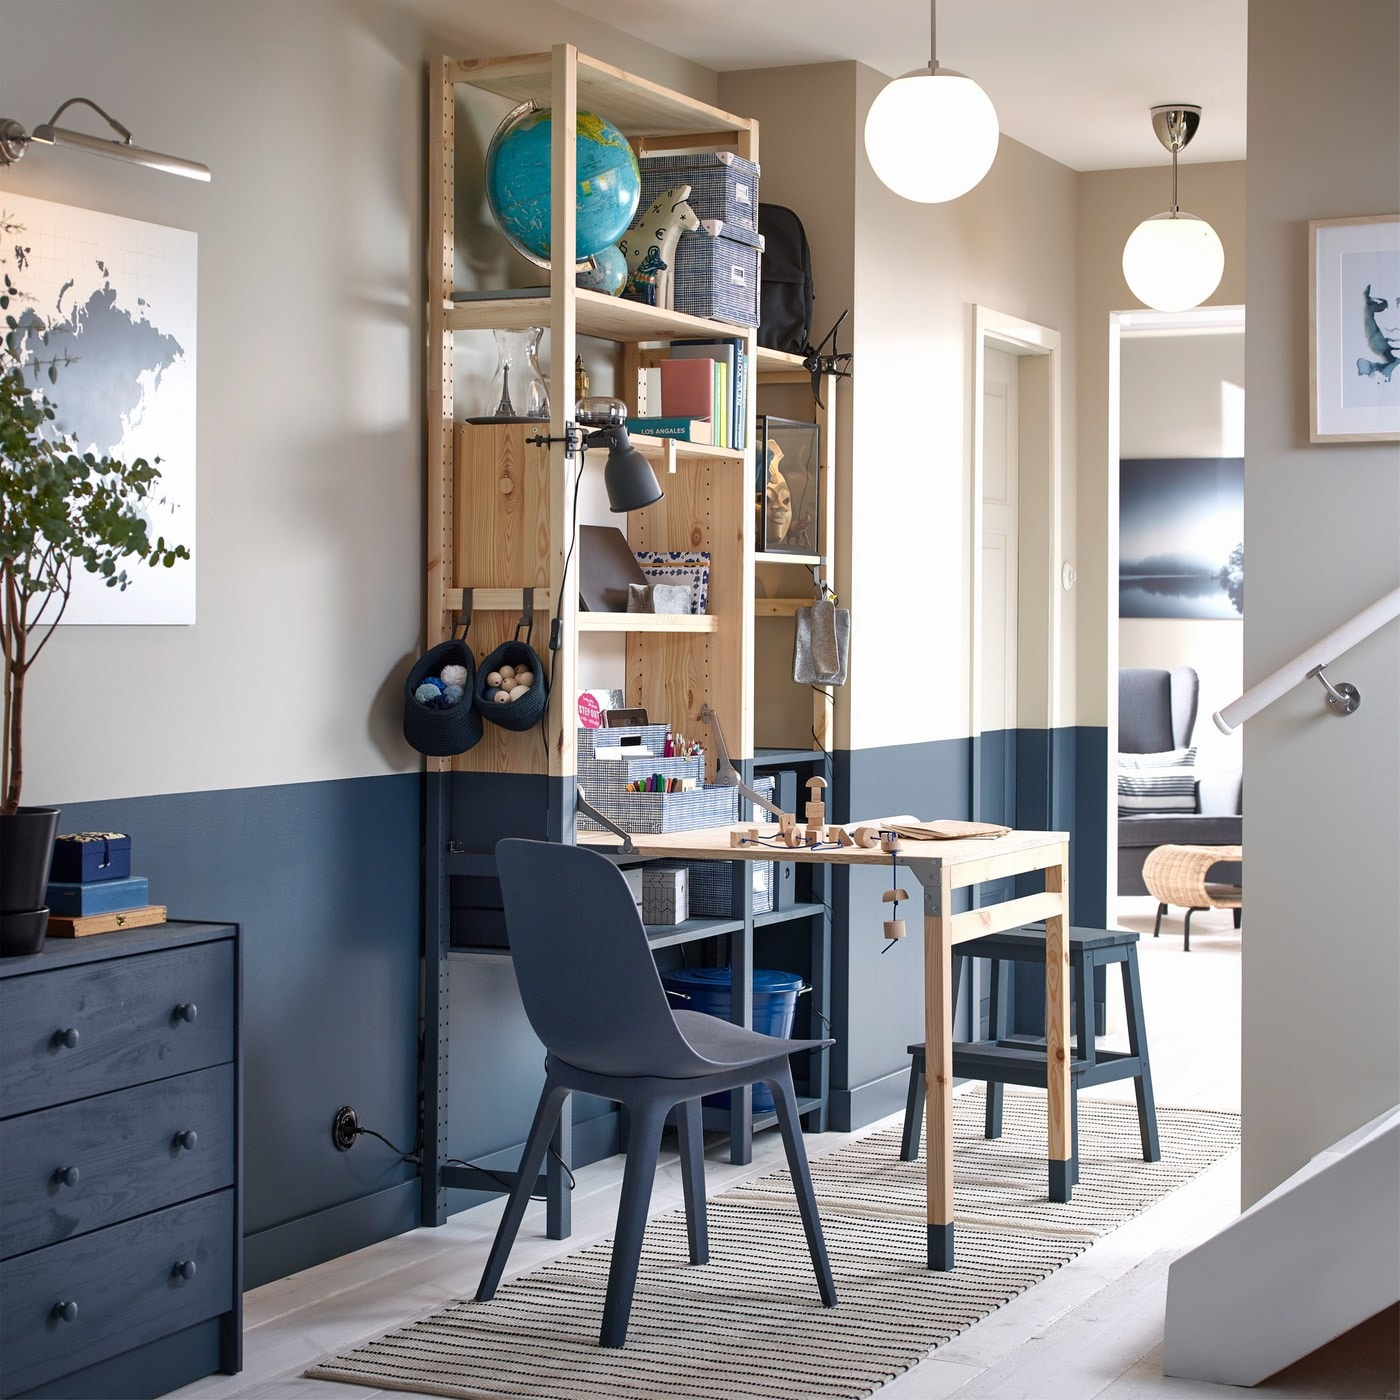 A blue and beige themed hallway containing an IKEA IVAR storage unit with a foldable table furnished as a home office.